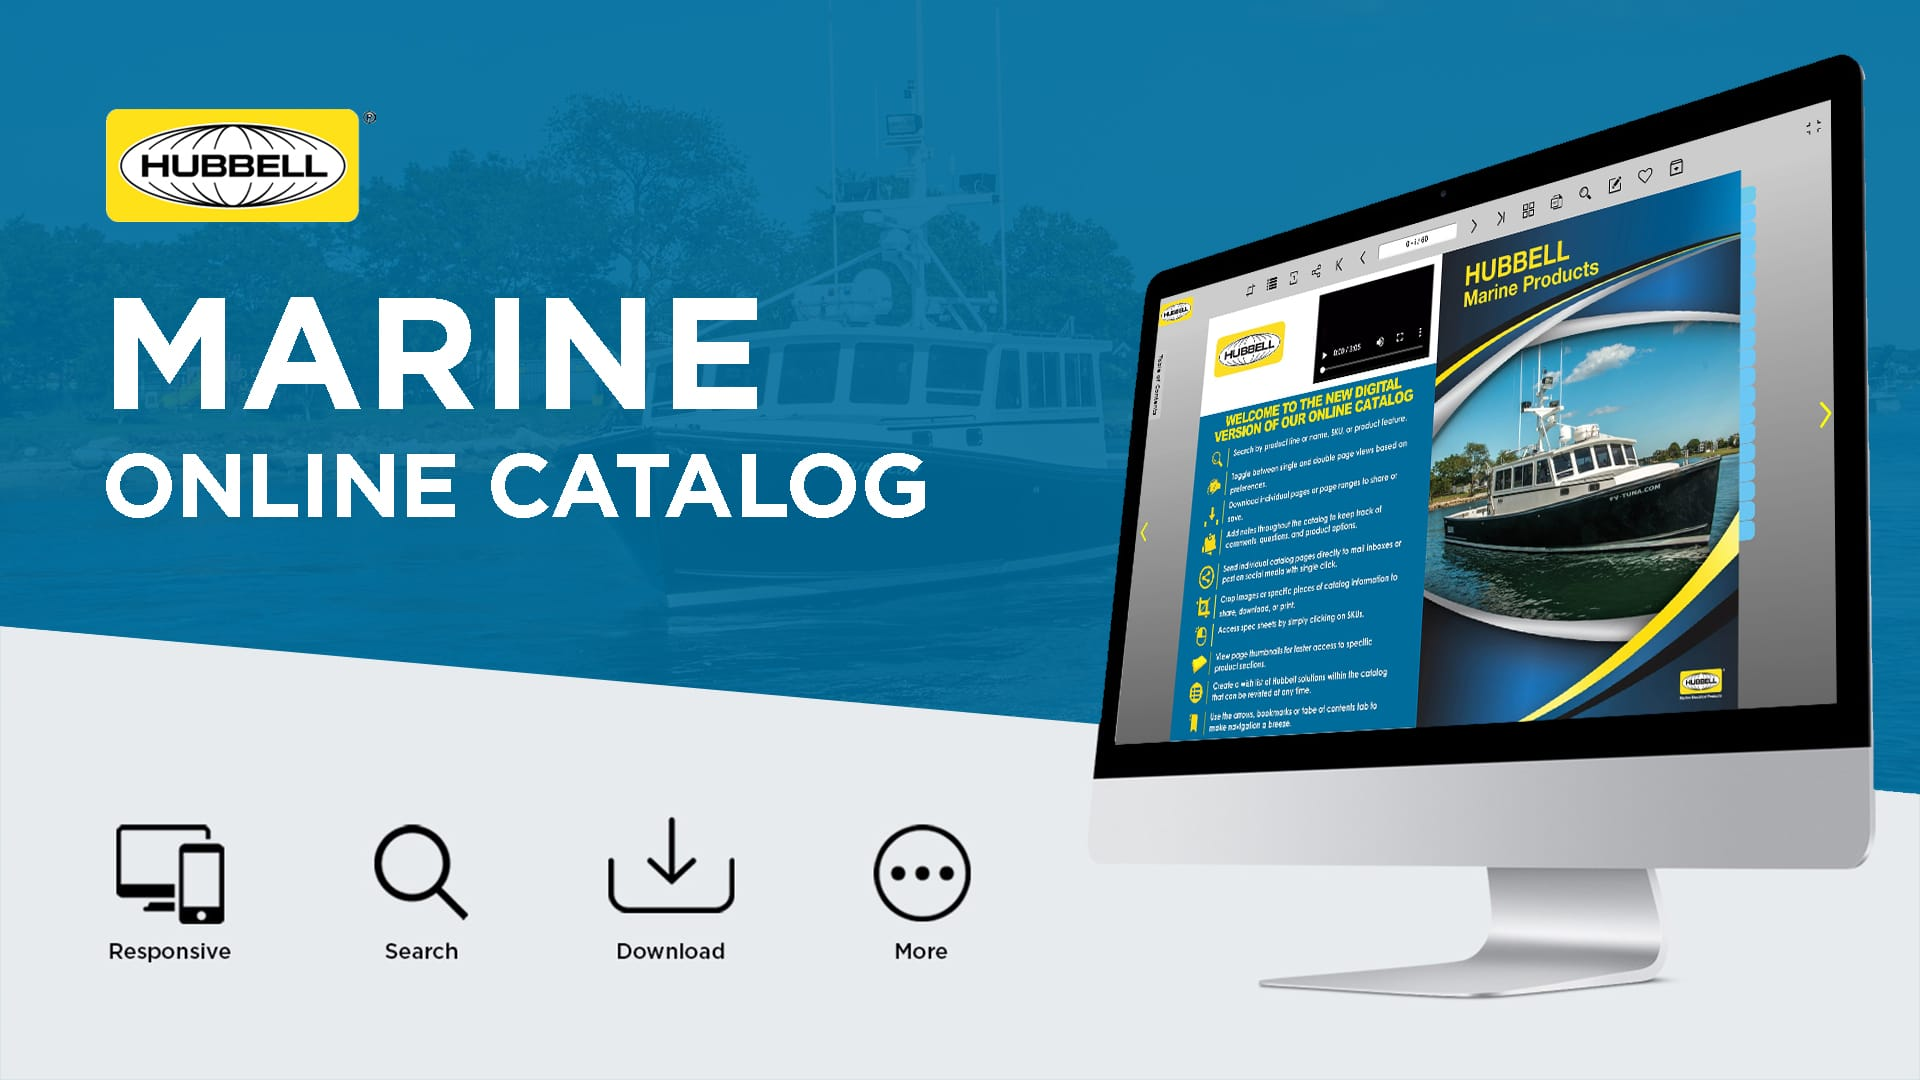 Marine-grade Wiring Applications for Boat Electronics ... on marine dc electrical circuit wiring, marine engine wiring harness, marine motor starter wiring,